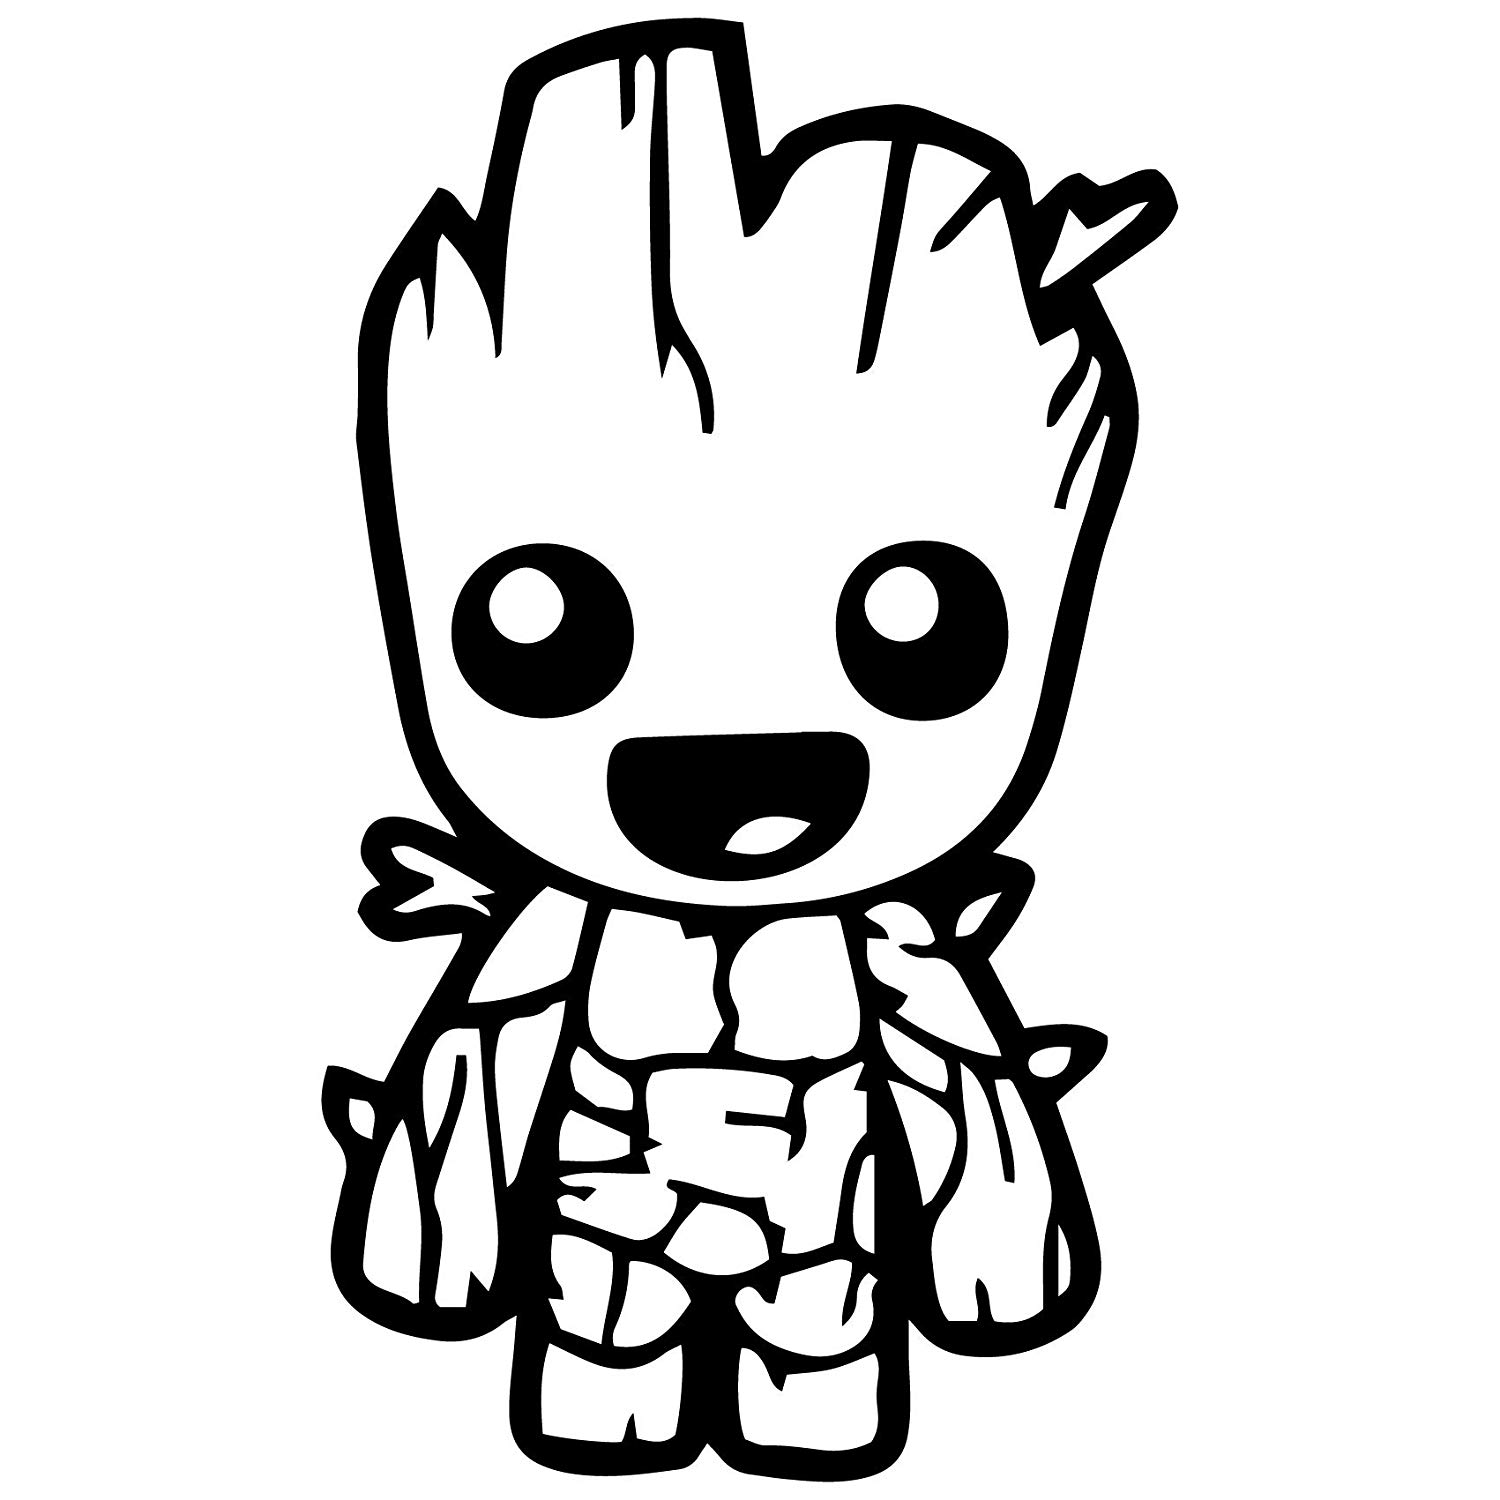 Guardians of the galaxy clipart black and white clip transparent stock Guardians Of The Galaxy – Groot.: Amazon.co.uk: Car & Motorbike clip transparent stock